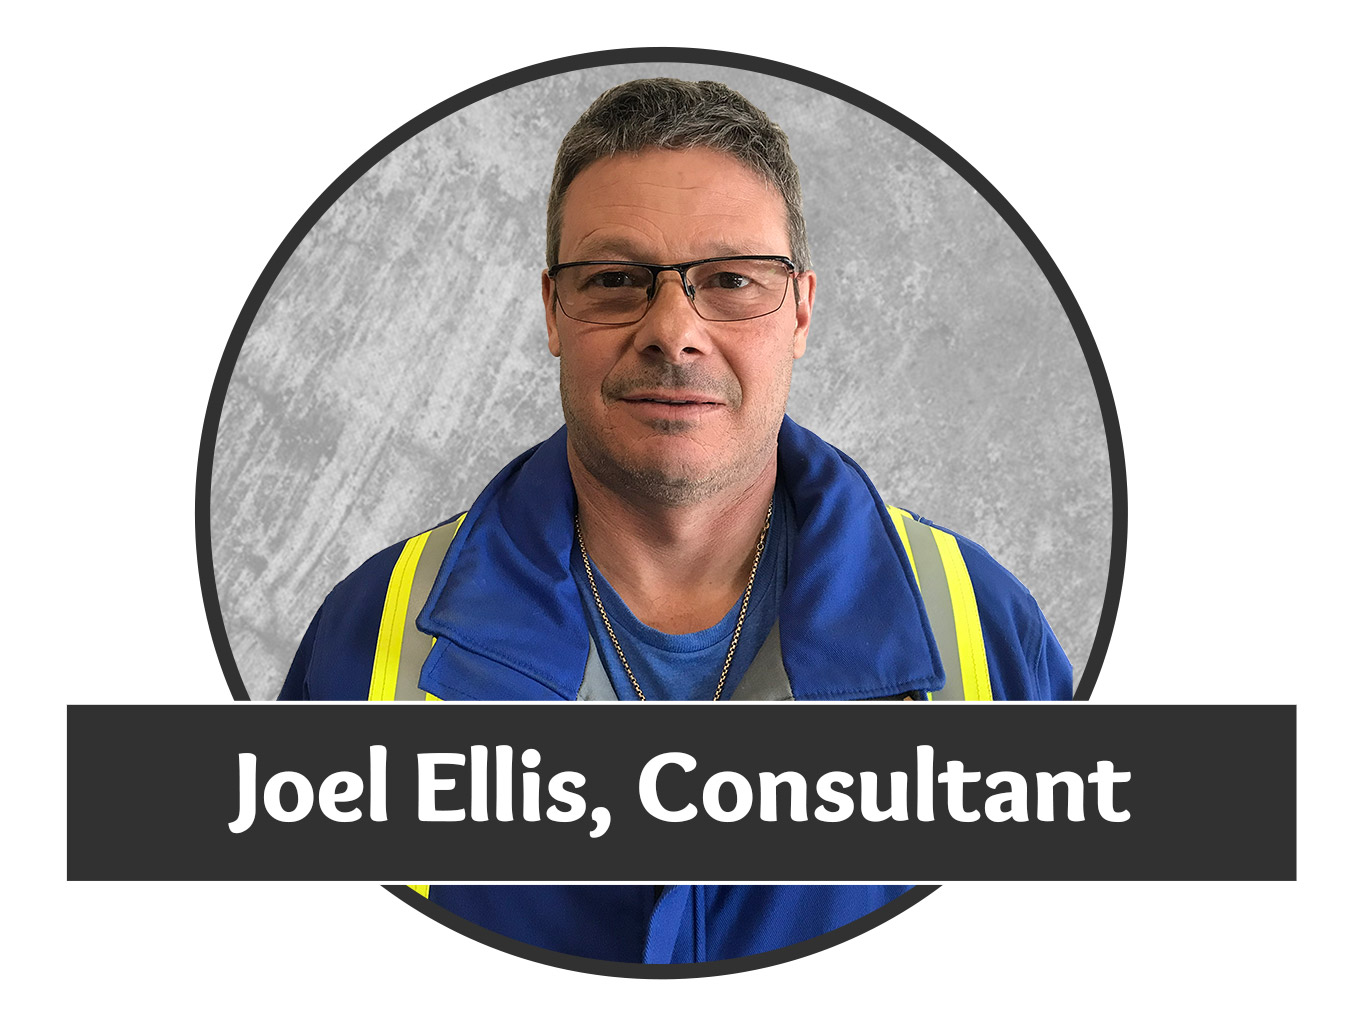 Headshot photo of Joel Ellis, the consultant for All Out Drilling.